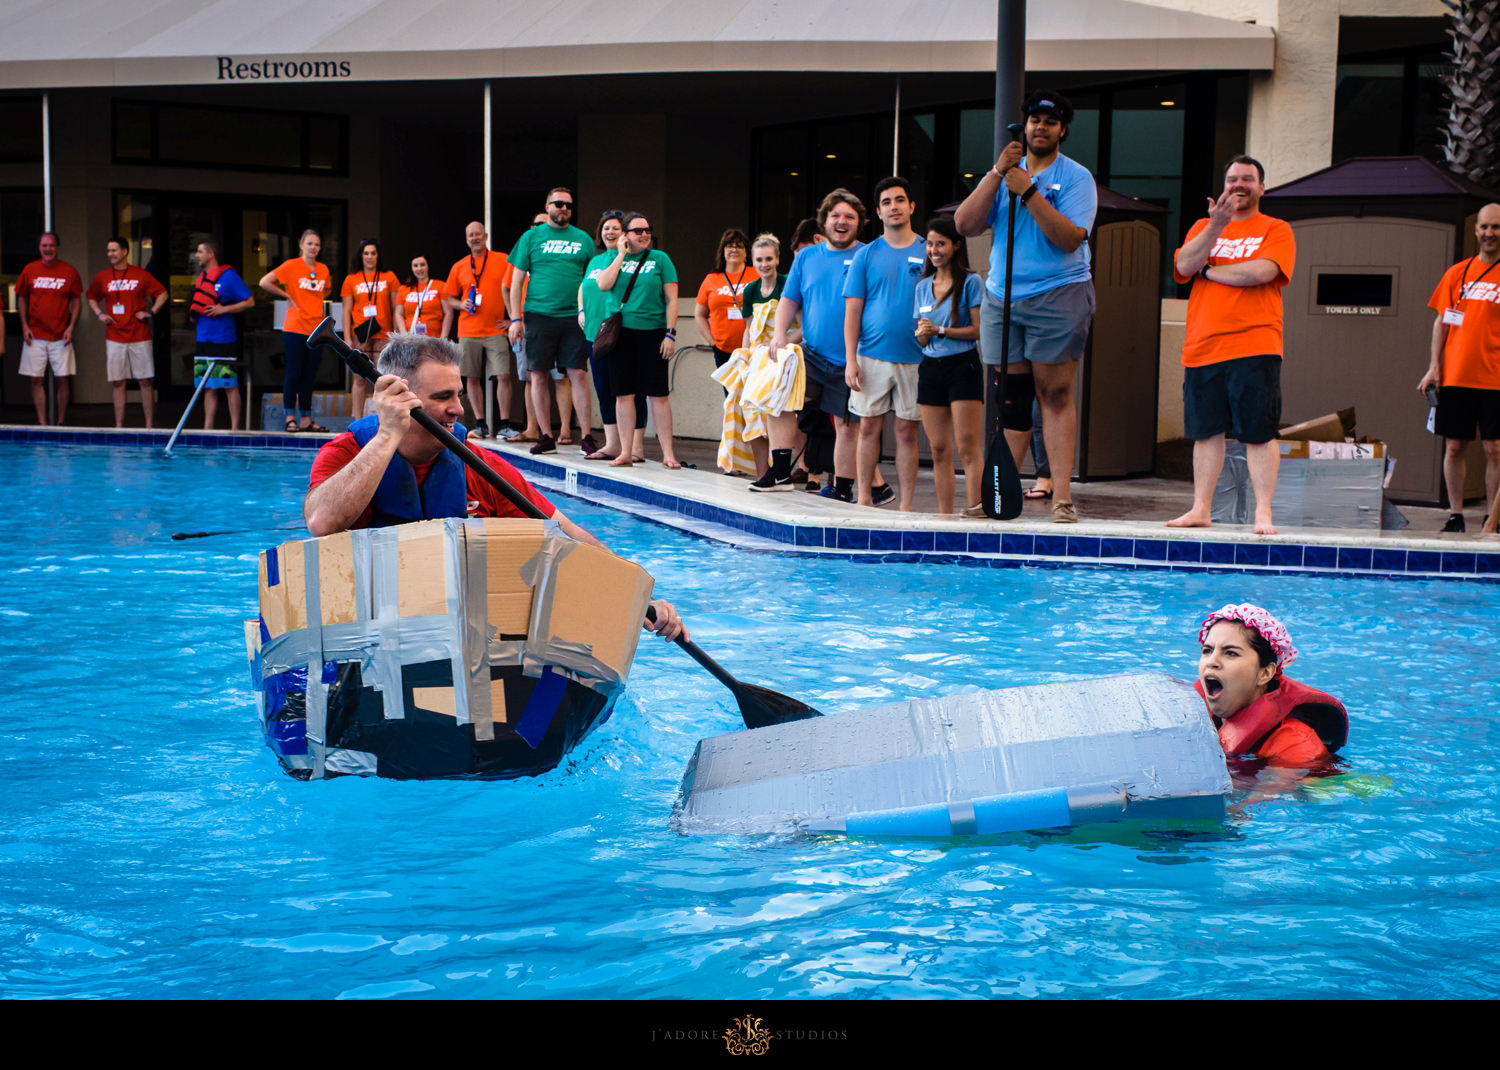 Team building event - Two colleagues in pool on cardboard boats